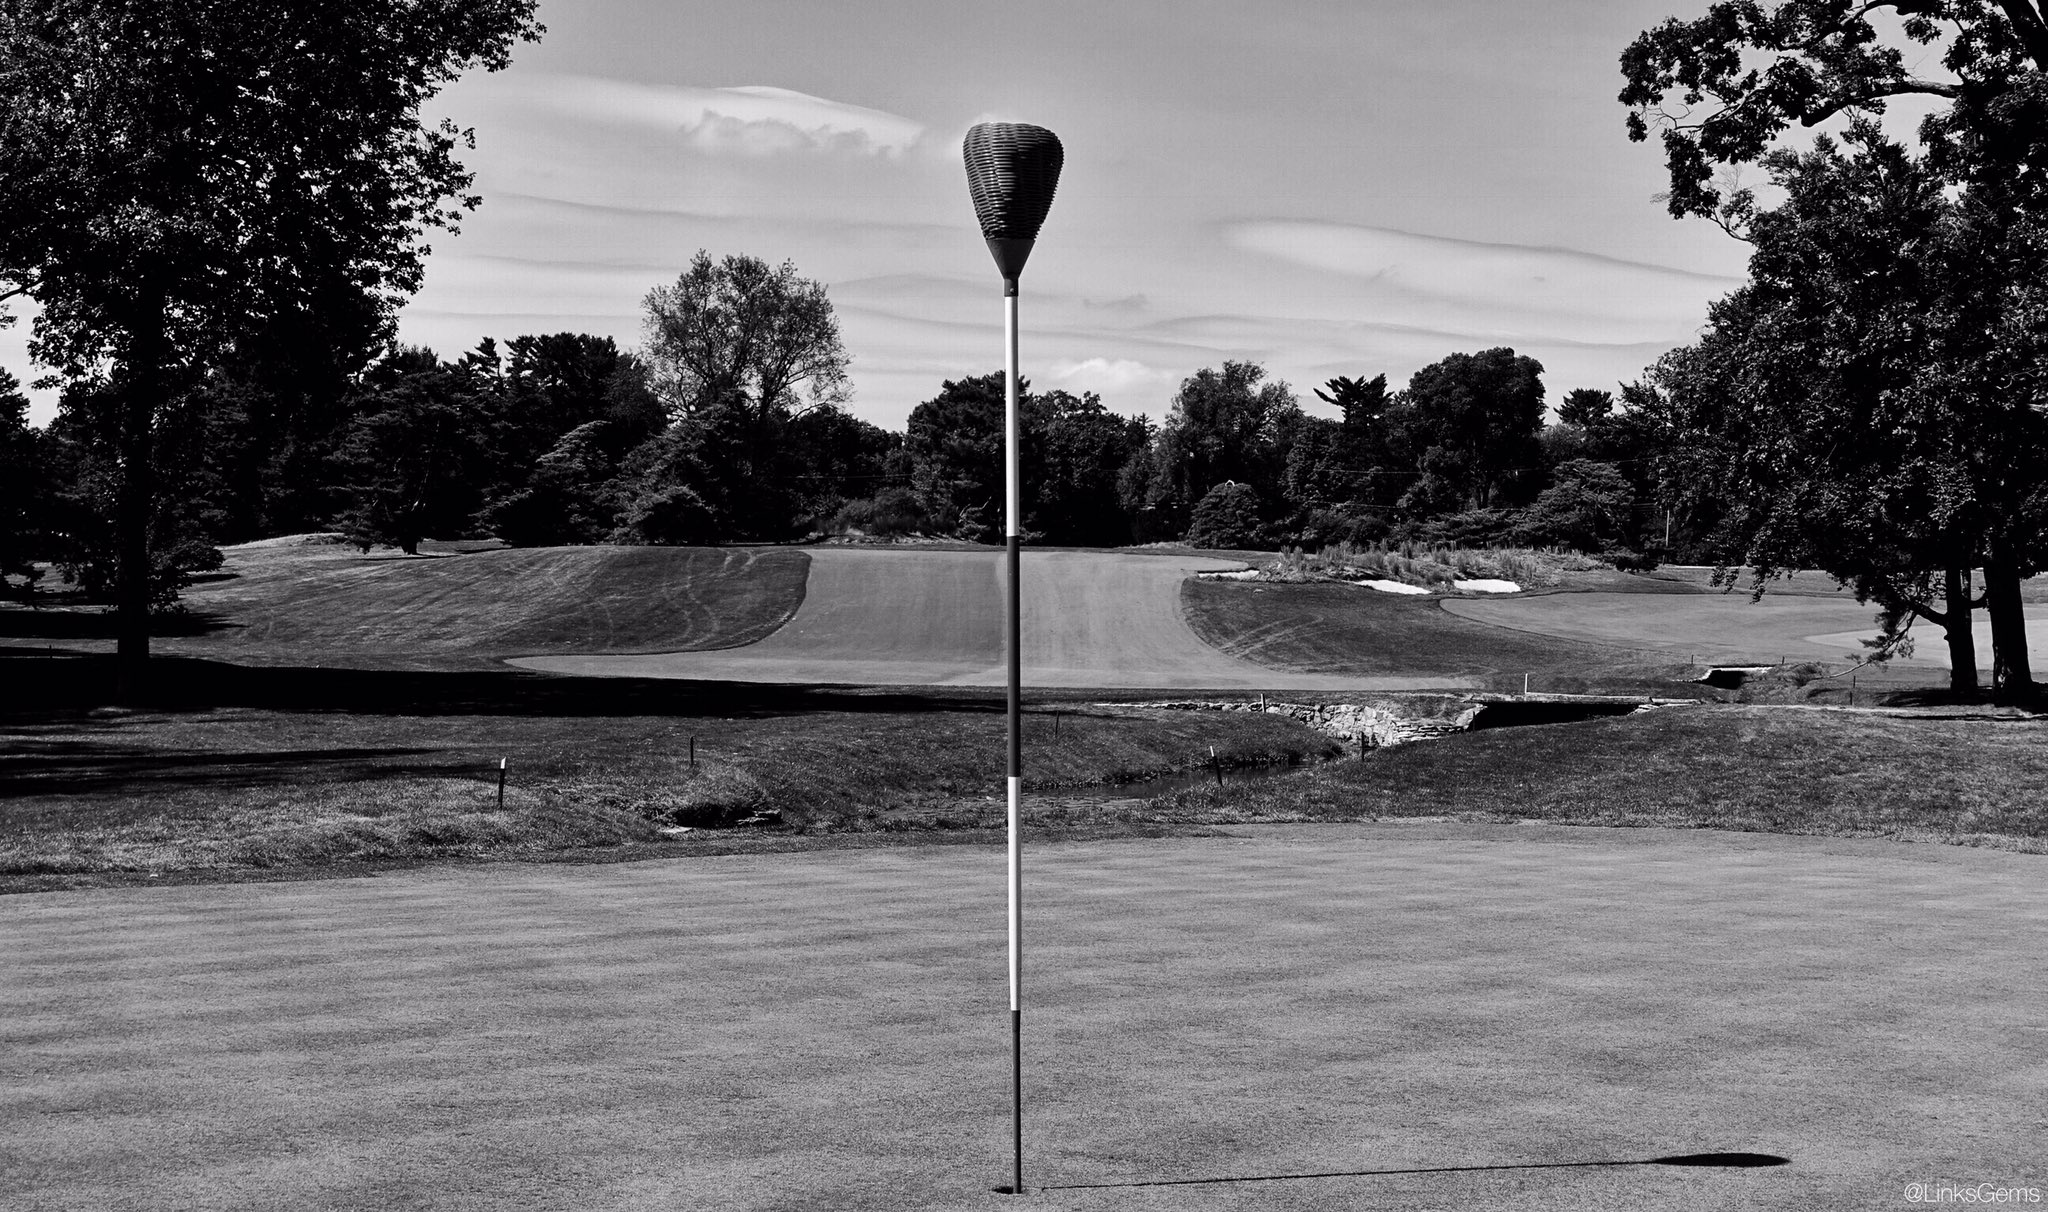 Linksgems Golf Photos Sur Twitter Tonight S Black And White Merion Golf Club Due To It S Long History Of Championship Play Merion Has Been Well Documented In Photos Over The Years Including